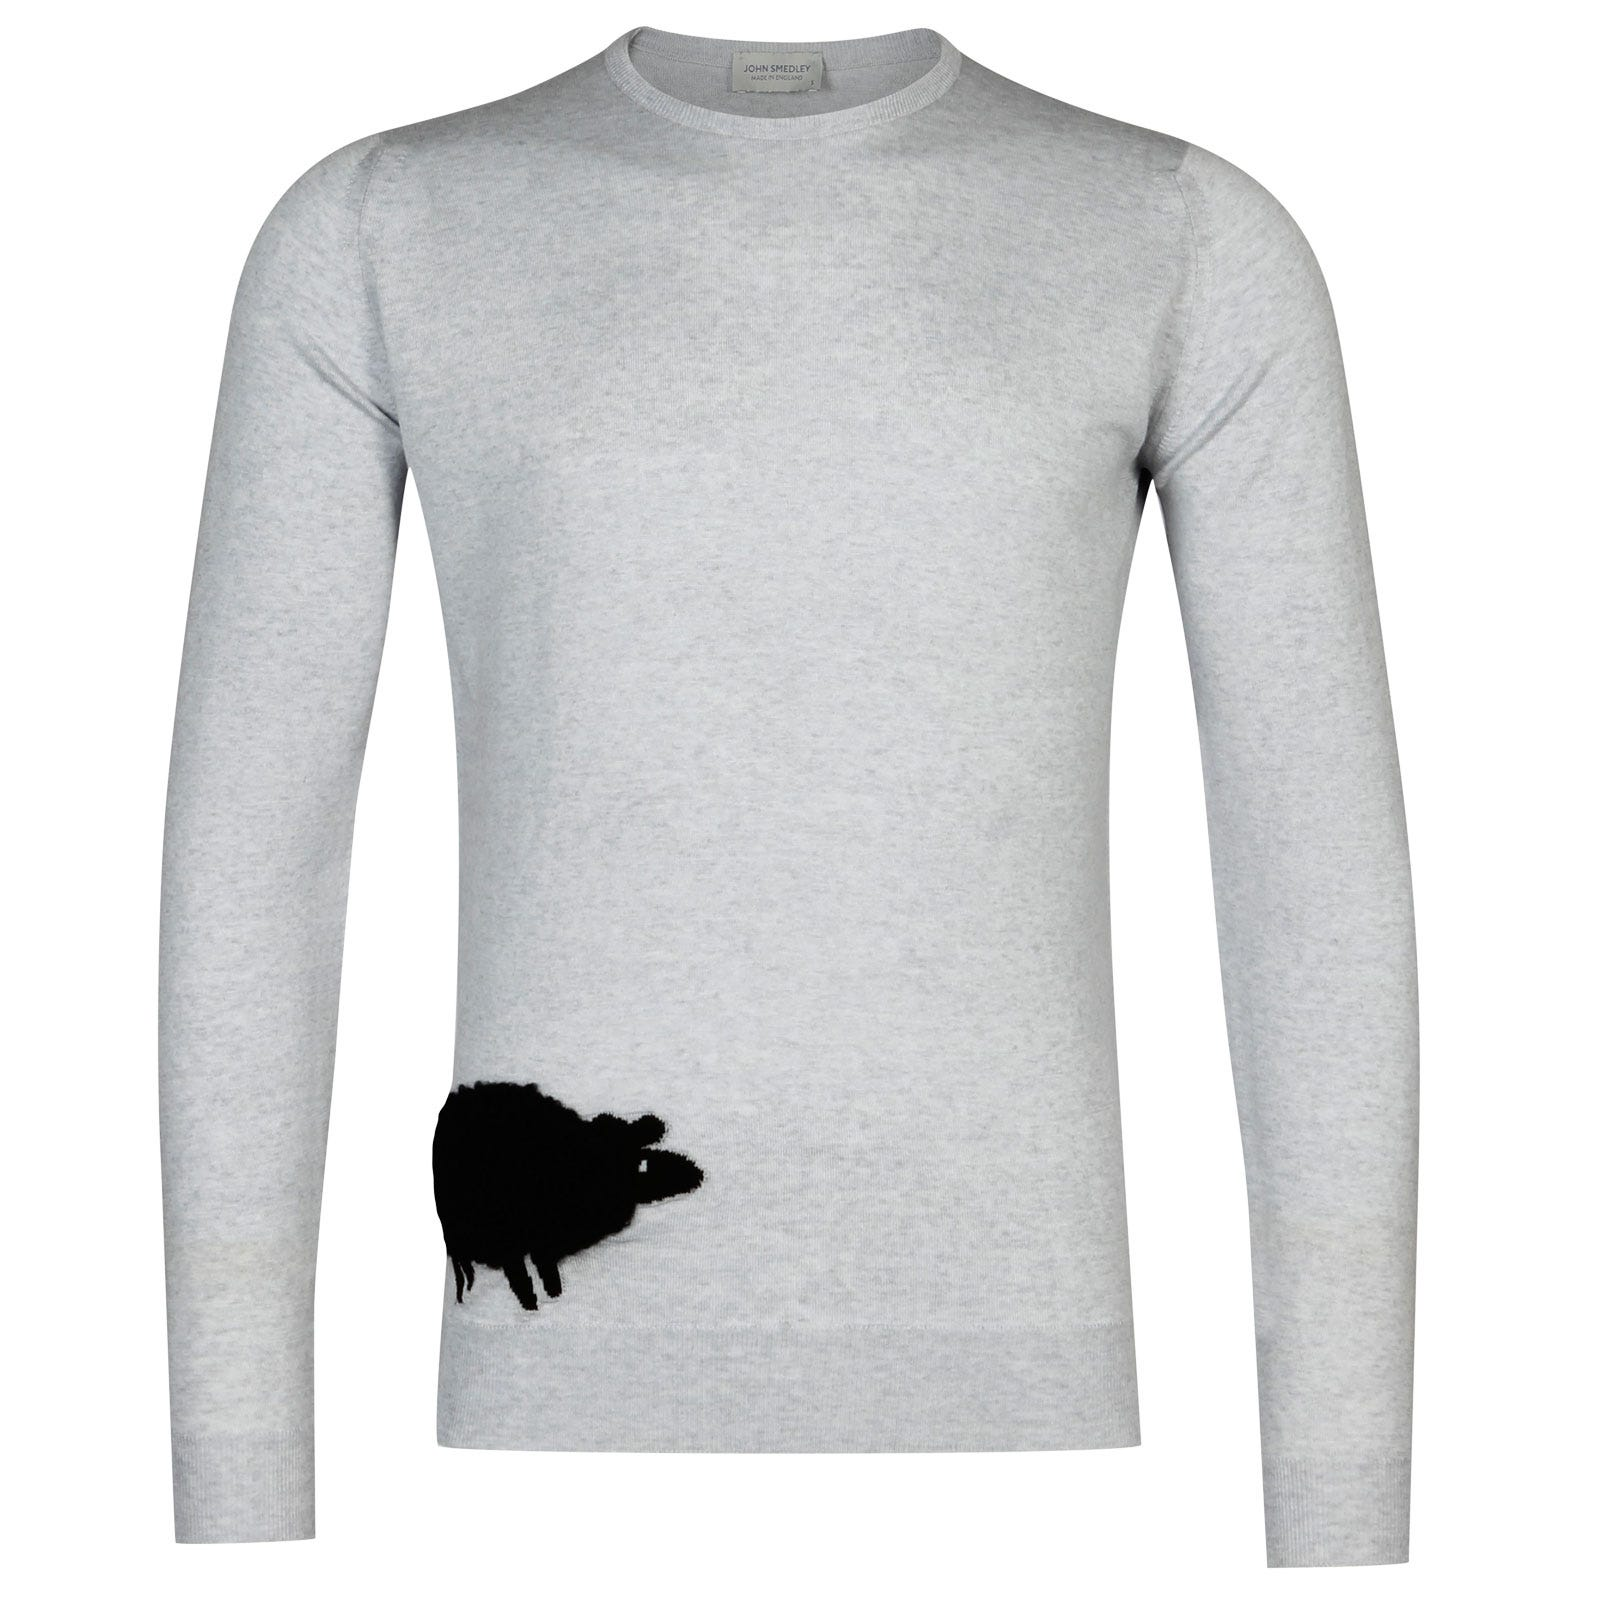 John Smedley Sheep Merino Wool Sweater in Kielder Green/Black-M